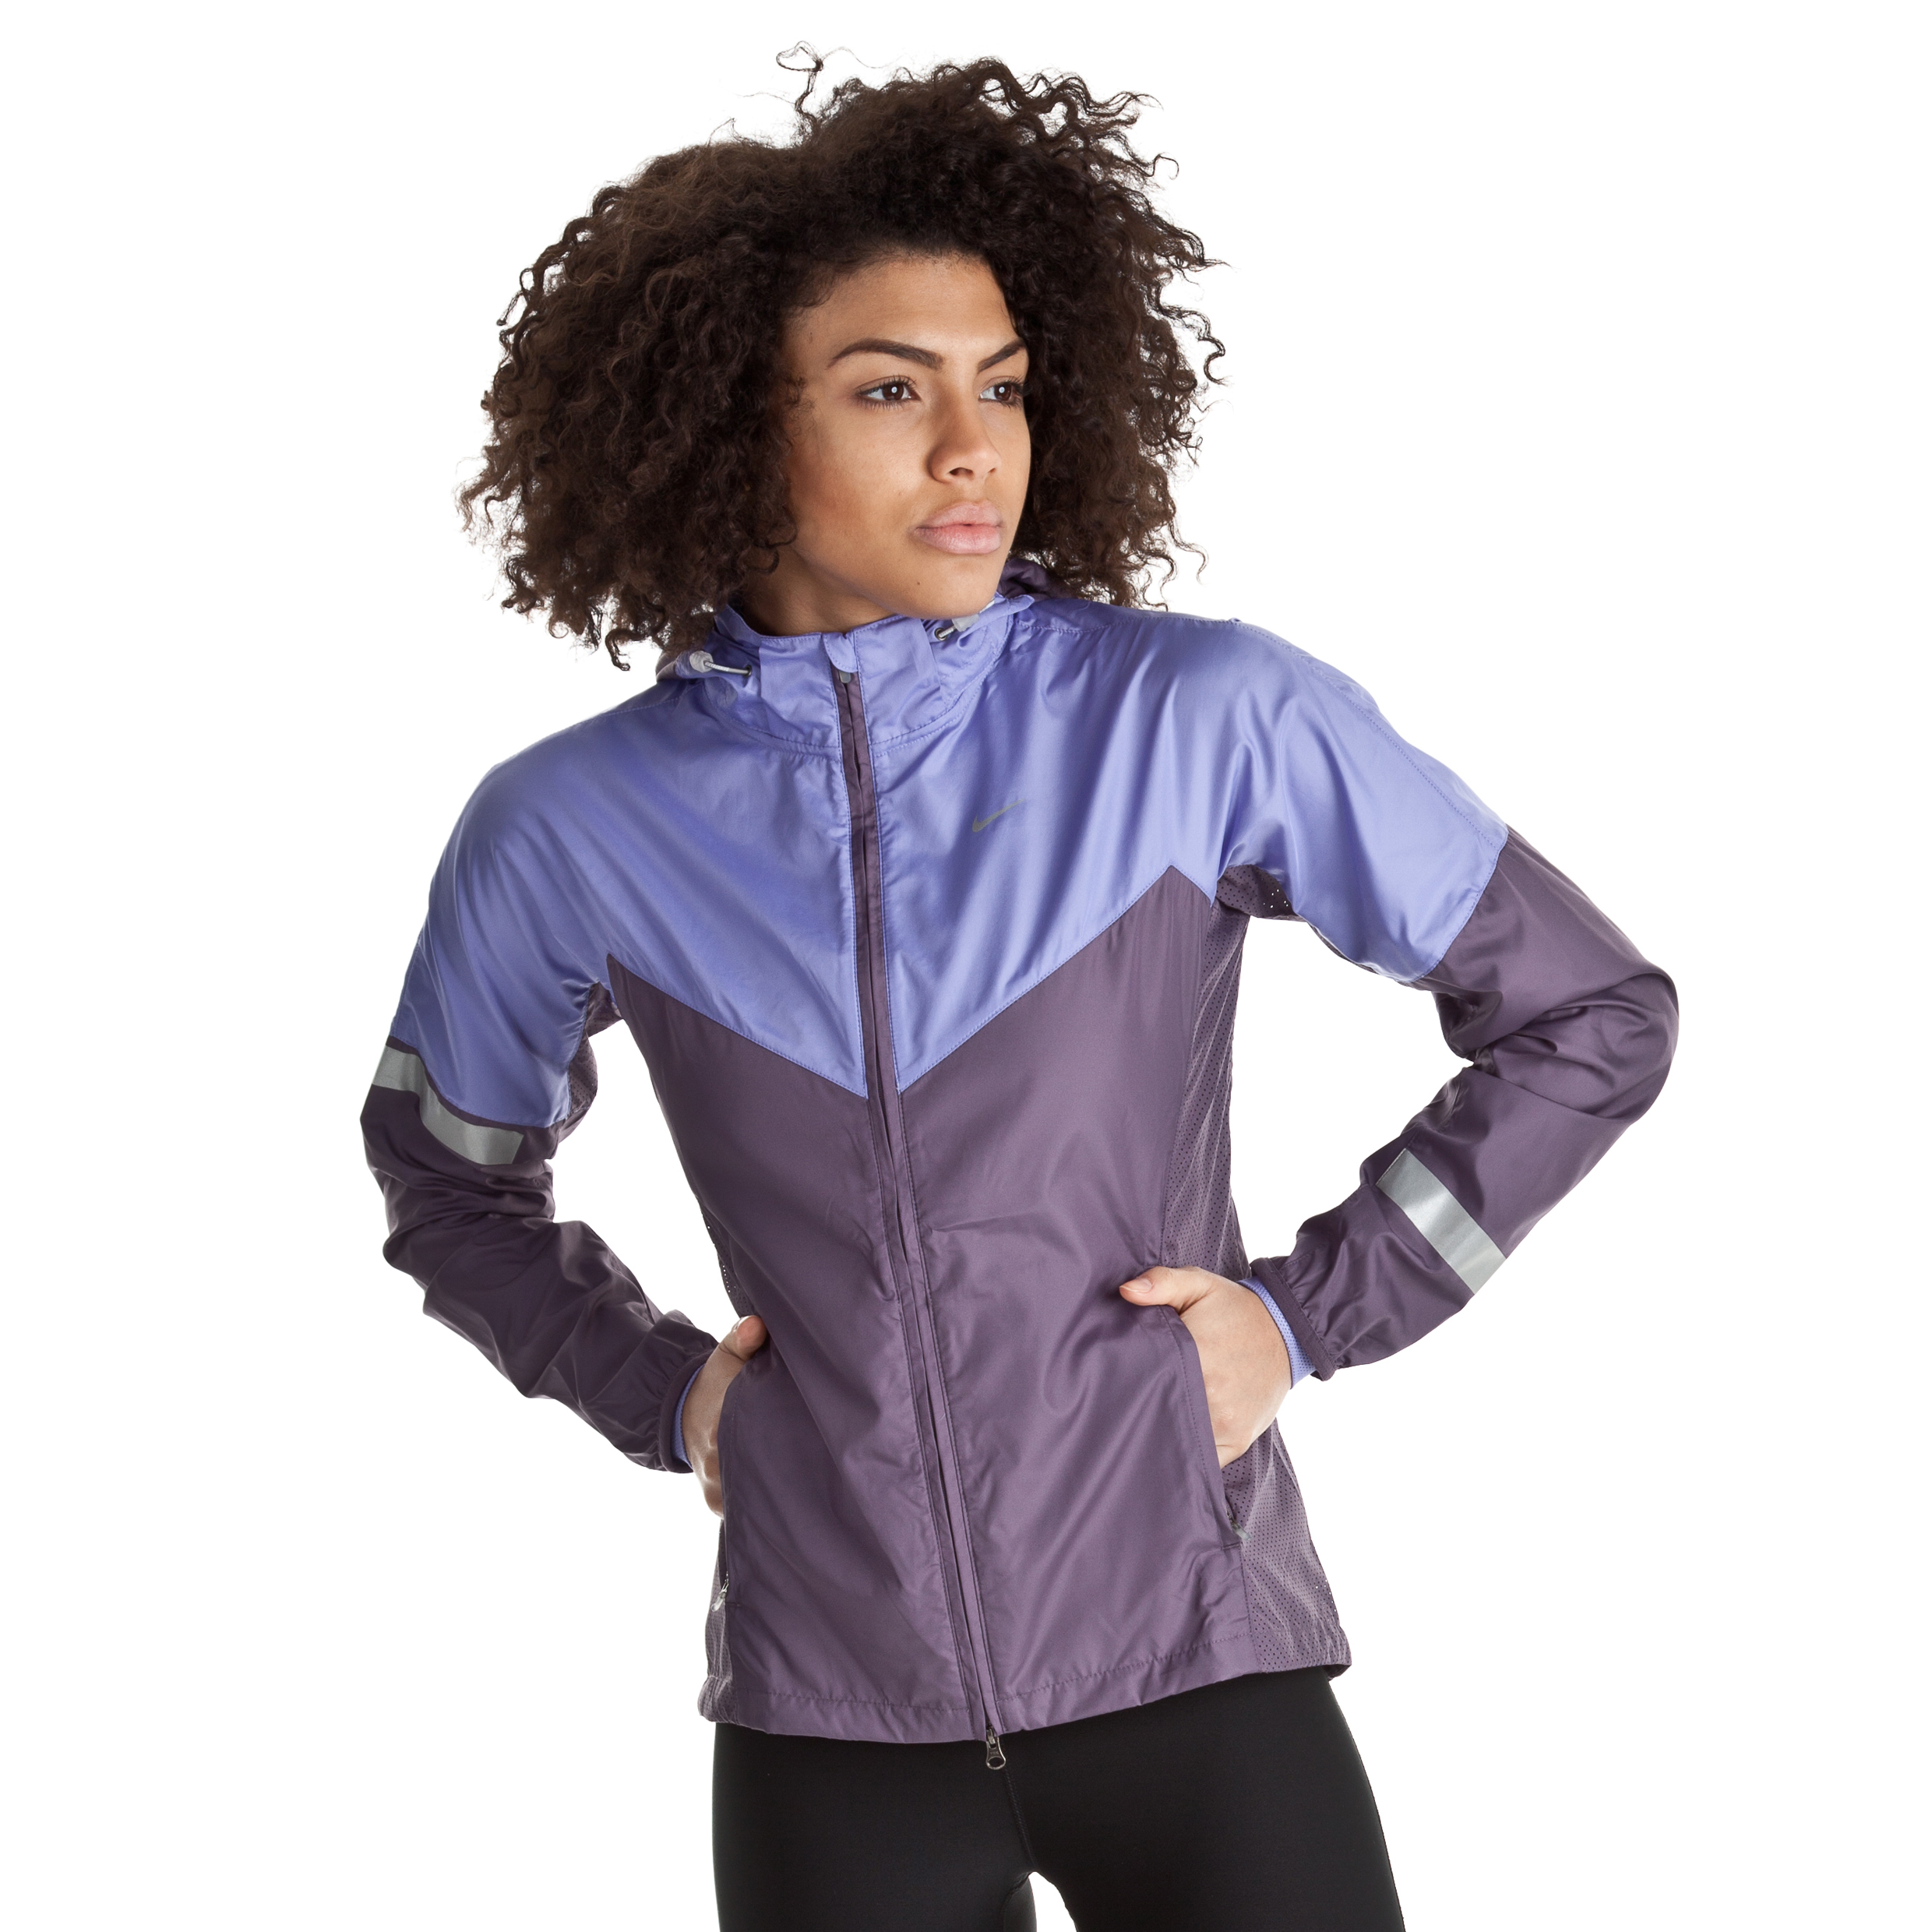 Nike Vapor Jacket - Dark Plum/Medium Violet/Reflective Silv - Womens